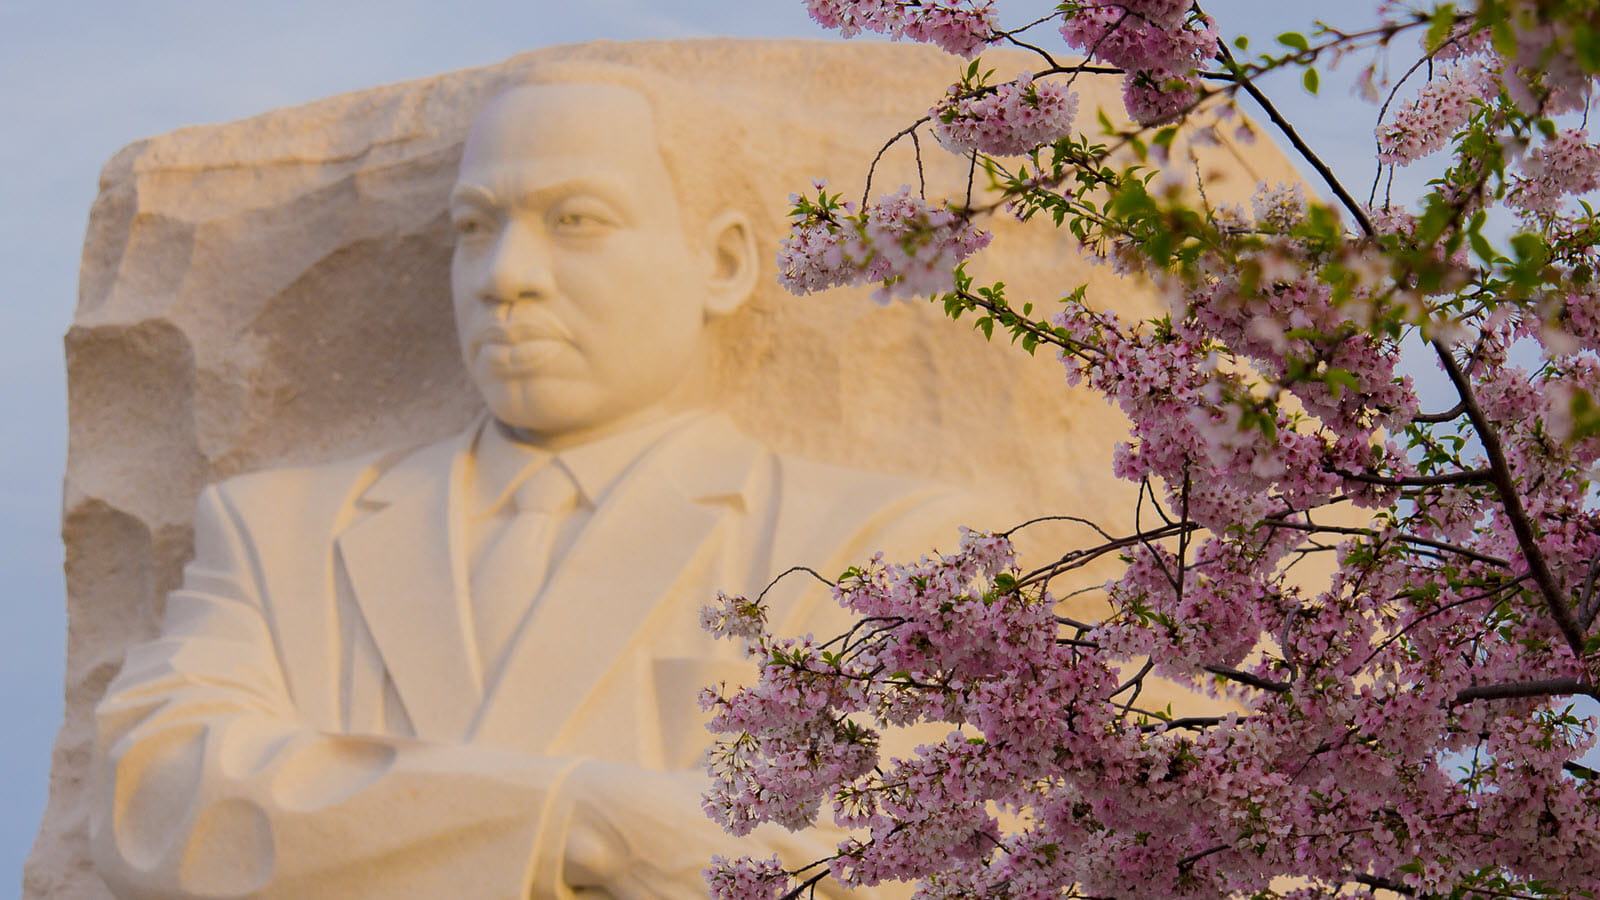 National memorial statue of Martin Luther King Jr. with cherry blossom branches